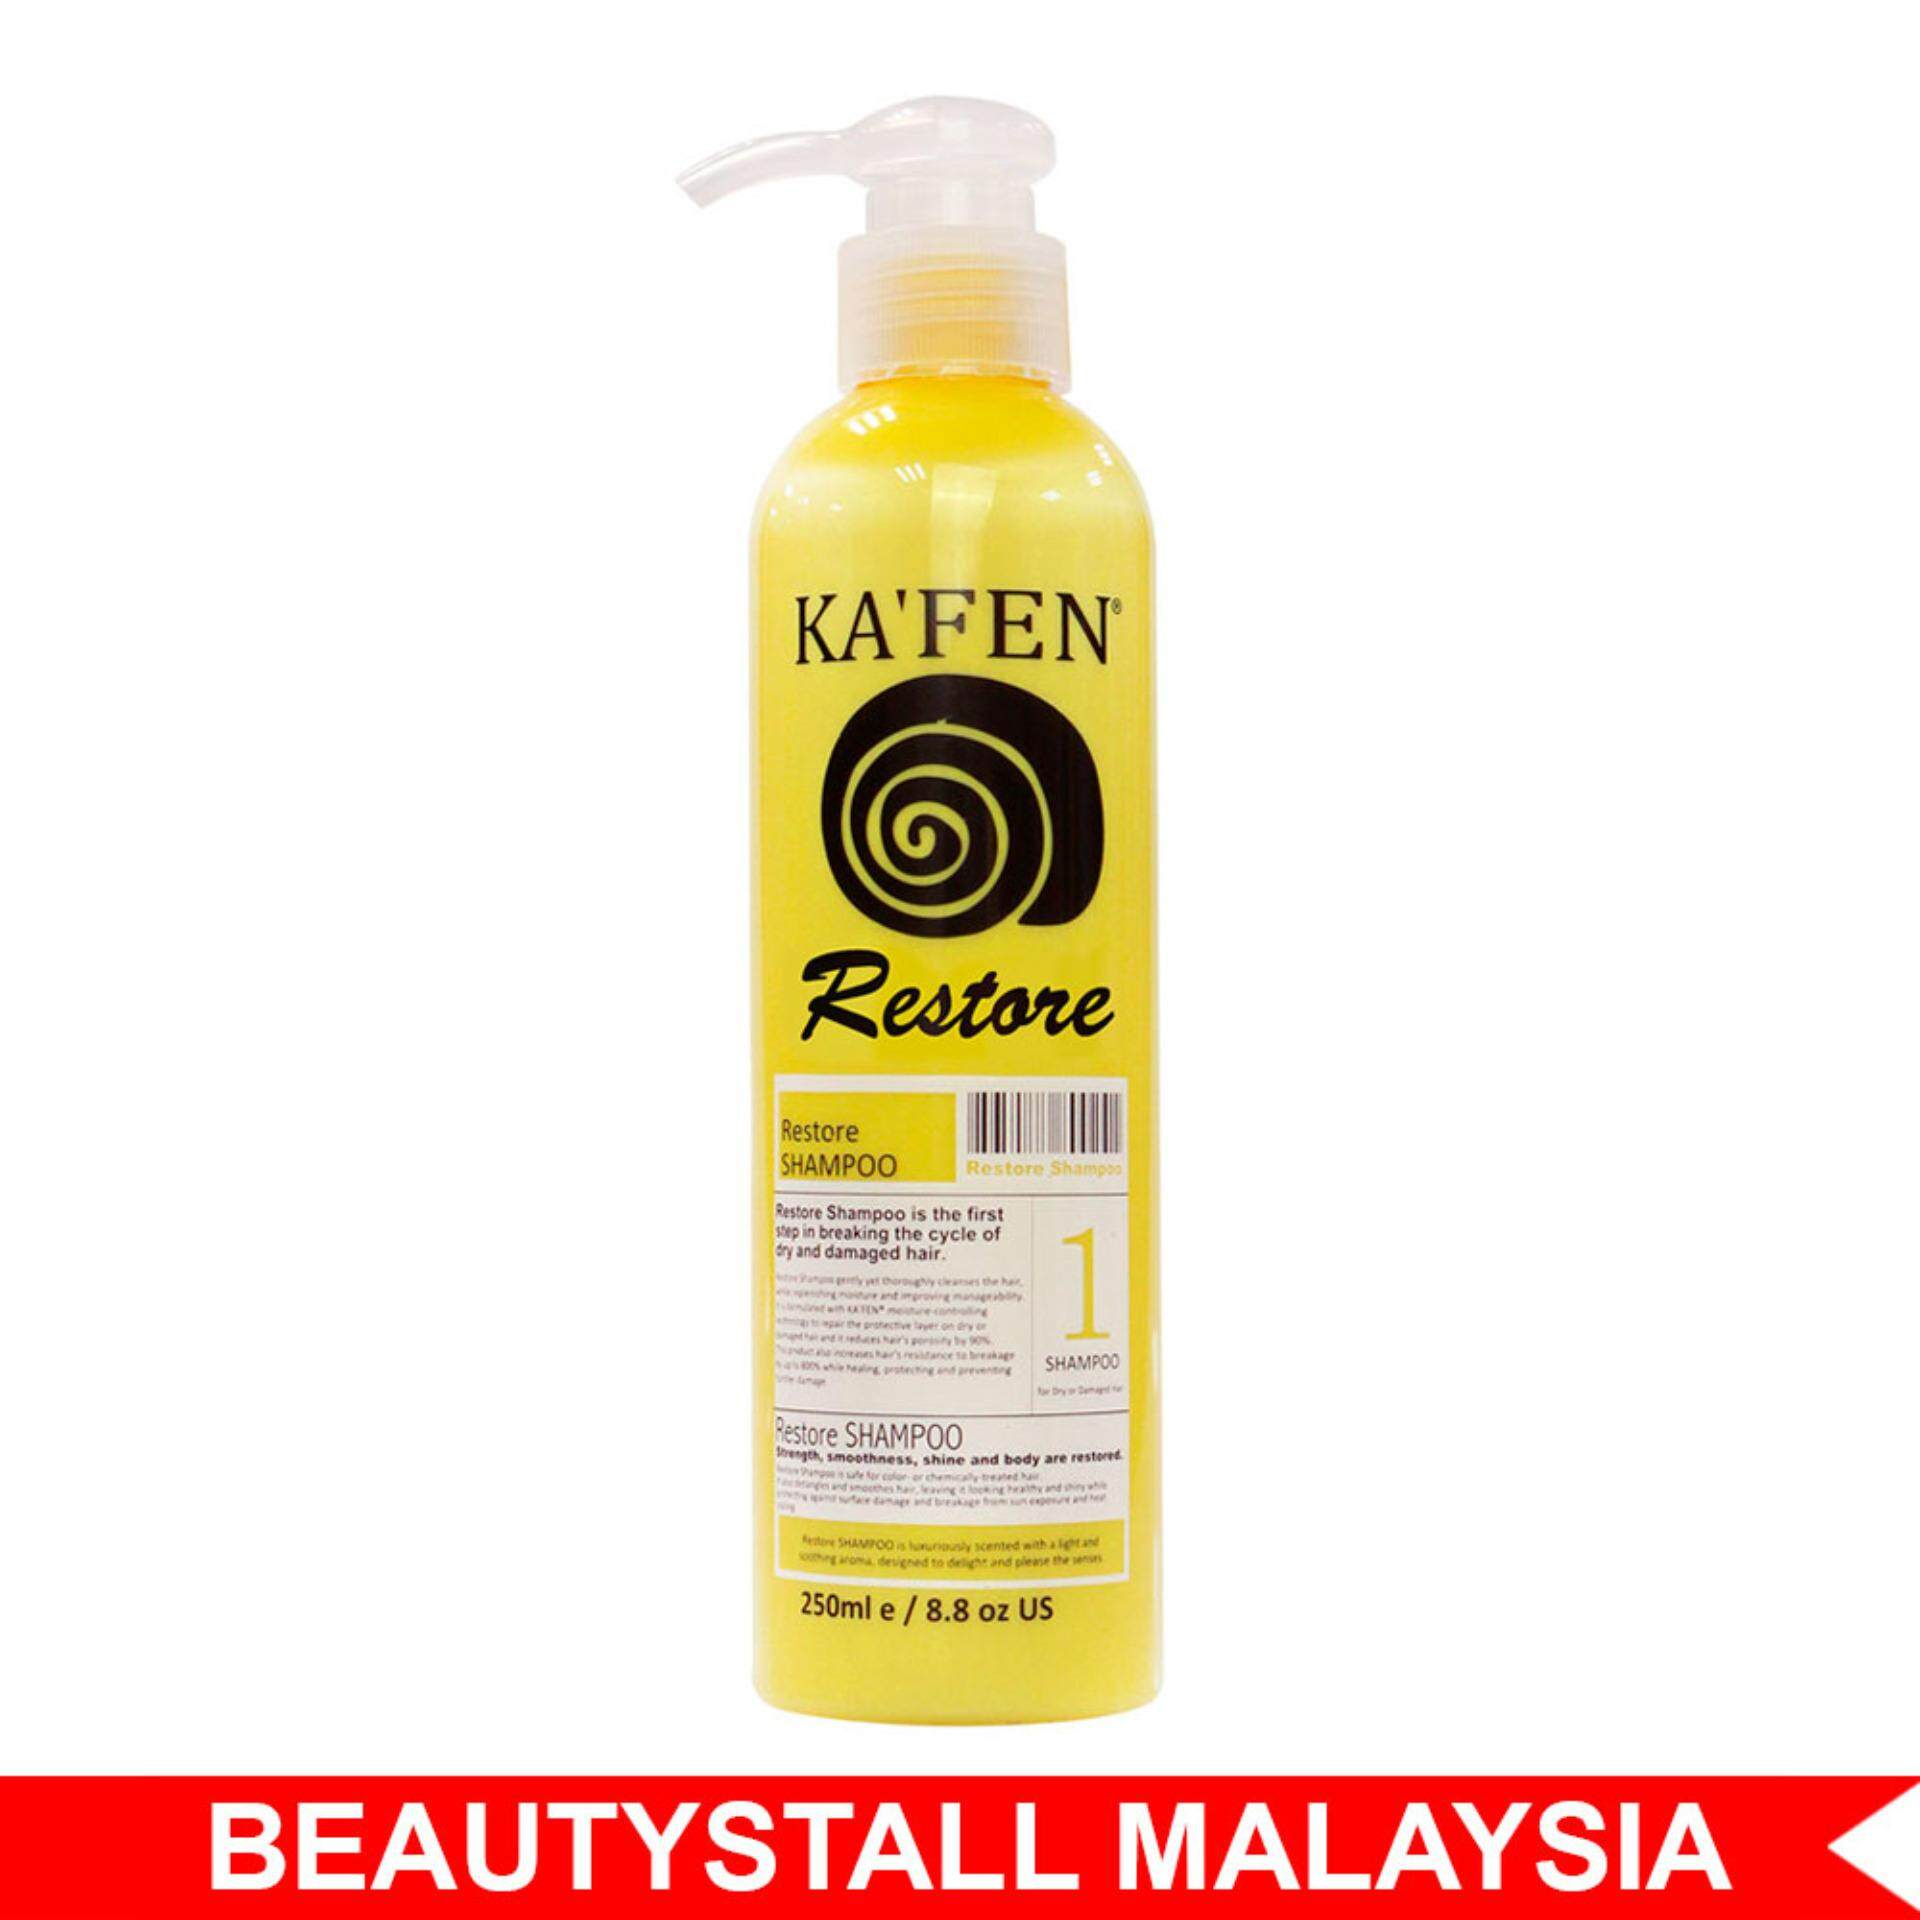 Sell Laucke Single Origin Cheapest Best Quality My Store Original Sprout Hair Ampamp Body Baby Wash 975 Ml Myr 55